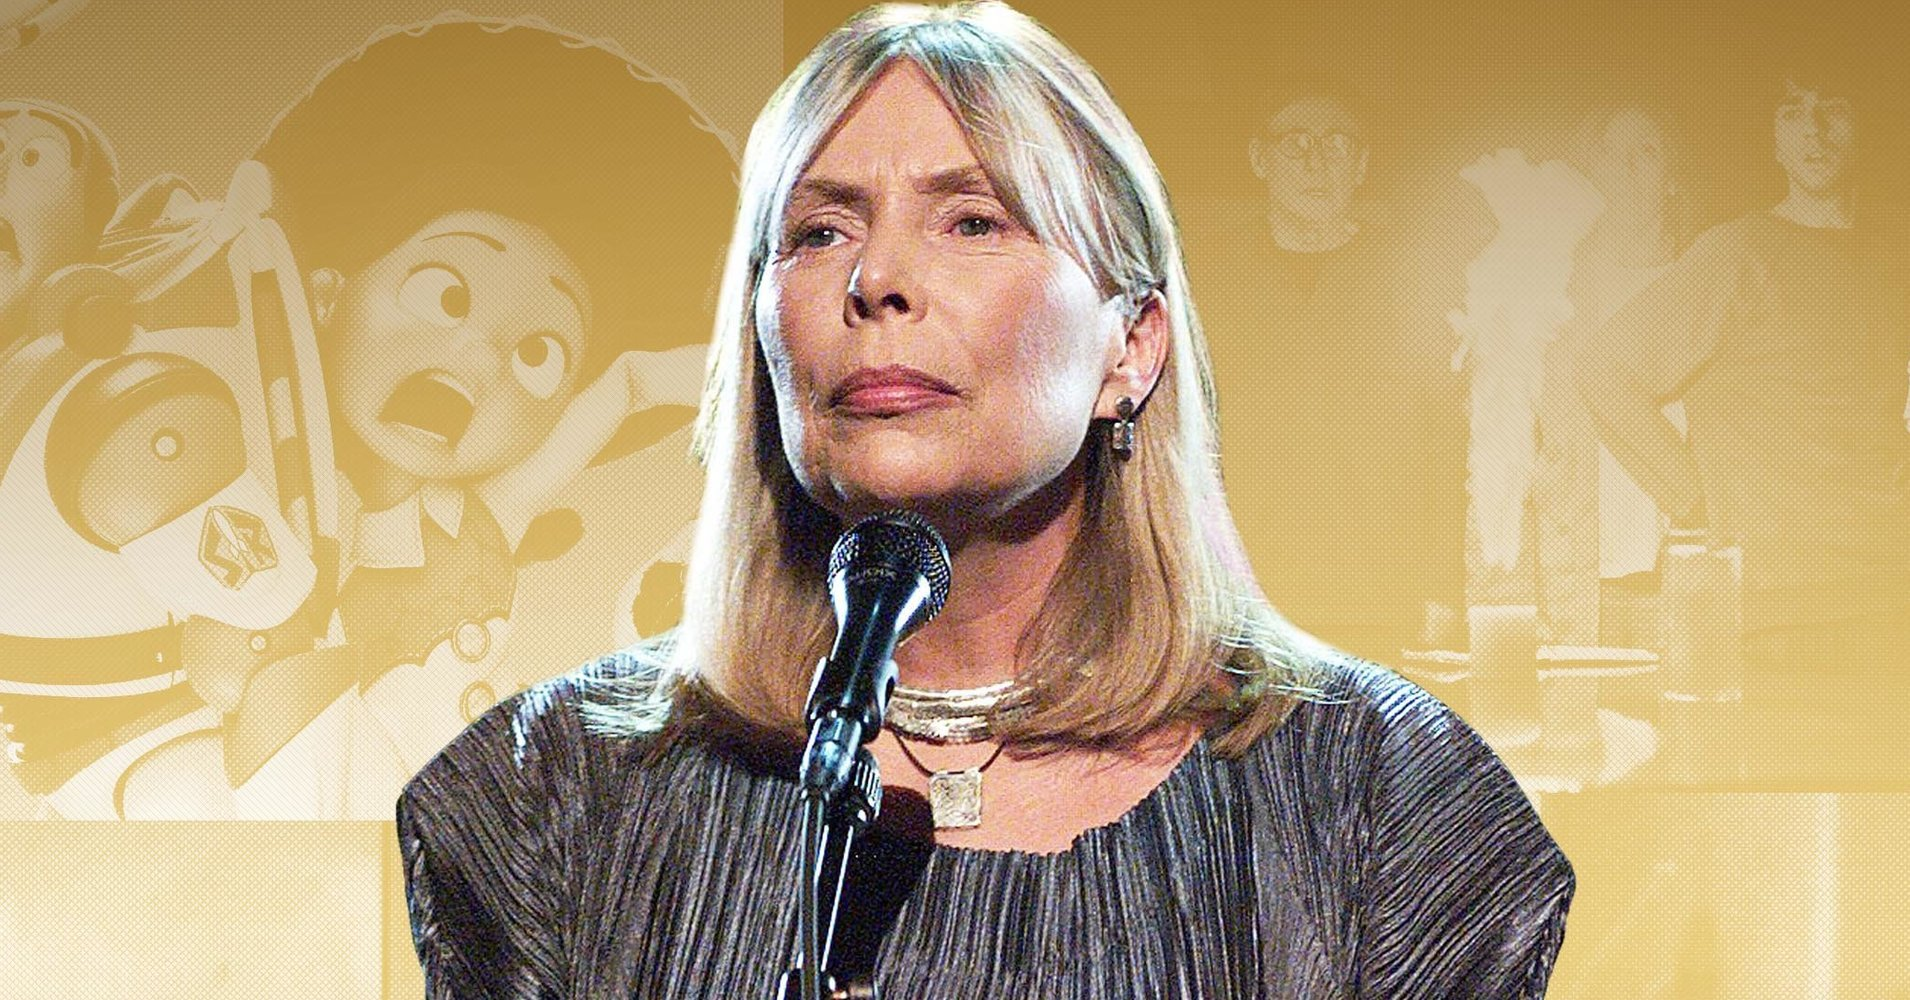 The Agony And Ecstasy Of Joni Mitchell's 'Both Sides Now,' An Inescapable Soundtrack Song